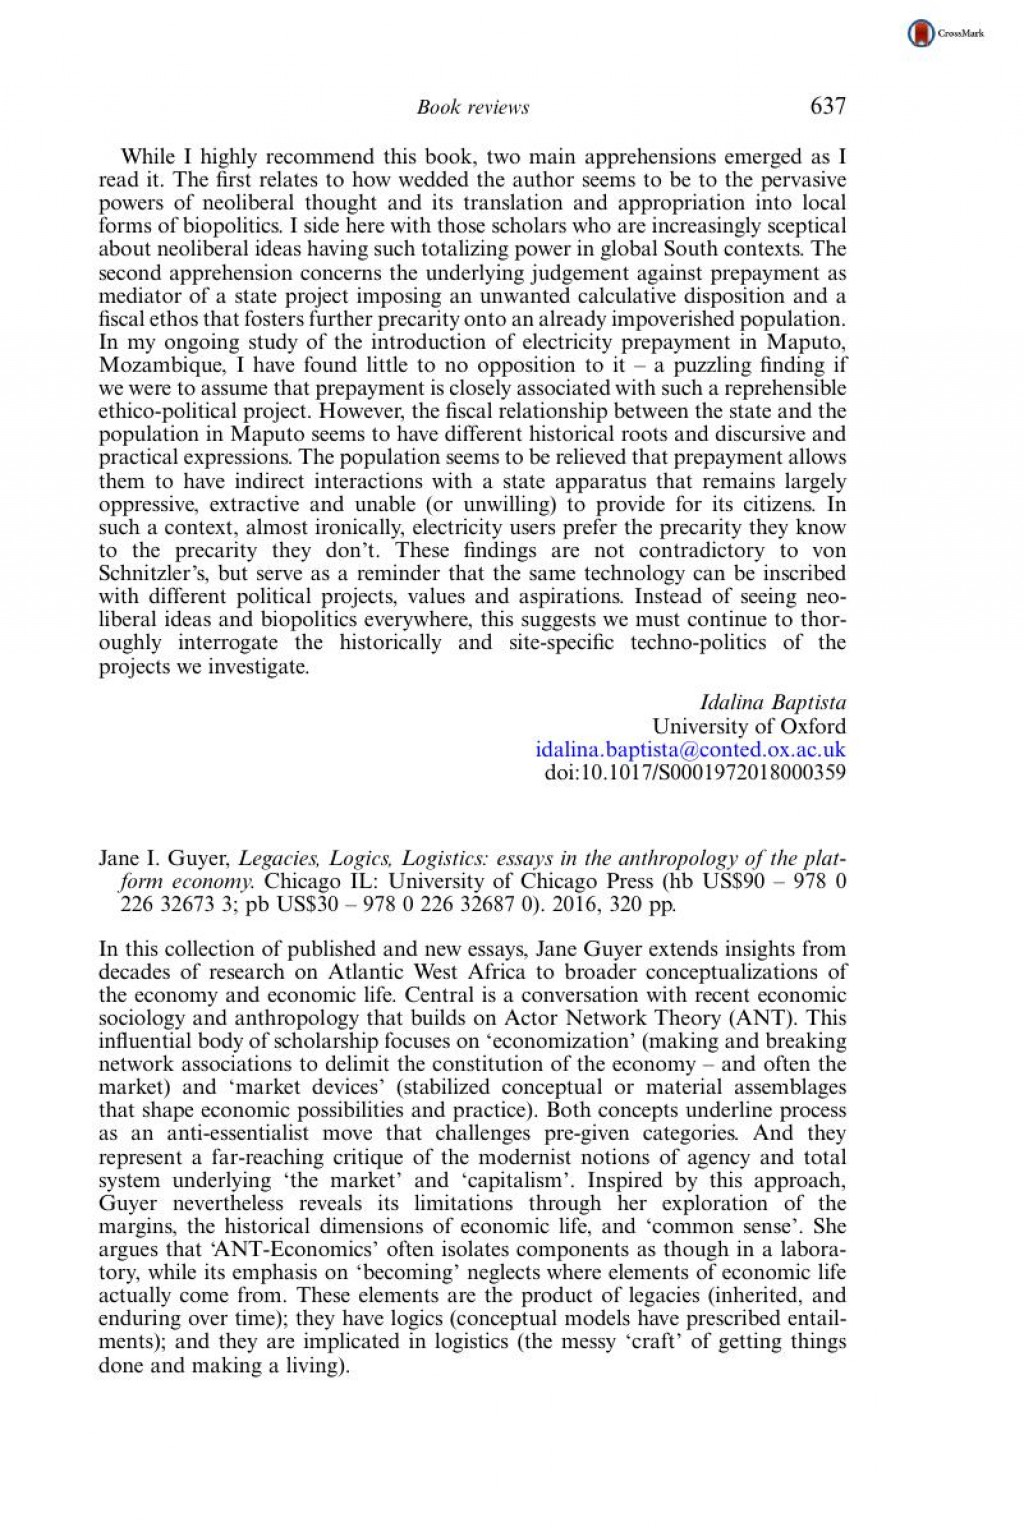 005 Anthropology Essays Uncategorized Jane I Guyer Legacies Logics Logistics In The Social Essay Example20d Research Papers20 Paper Economic Stirring Topics Large